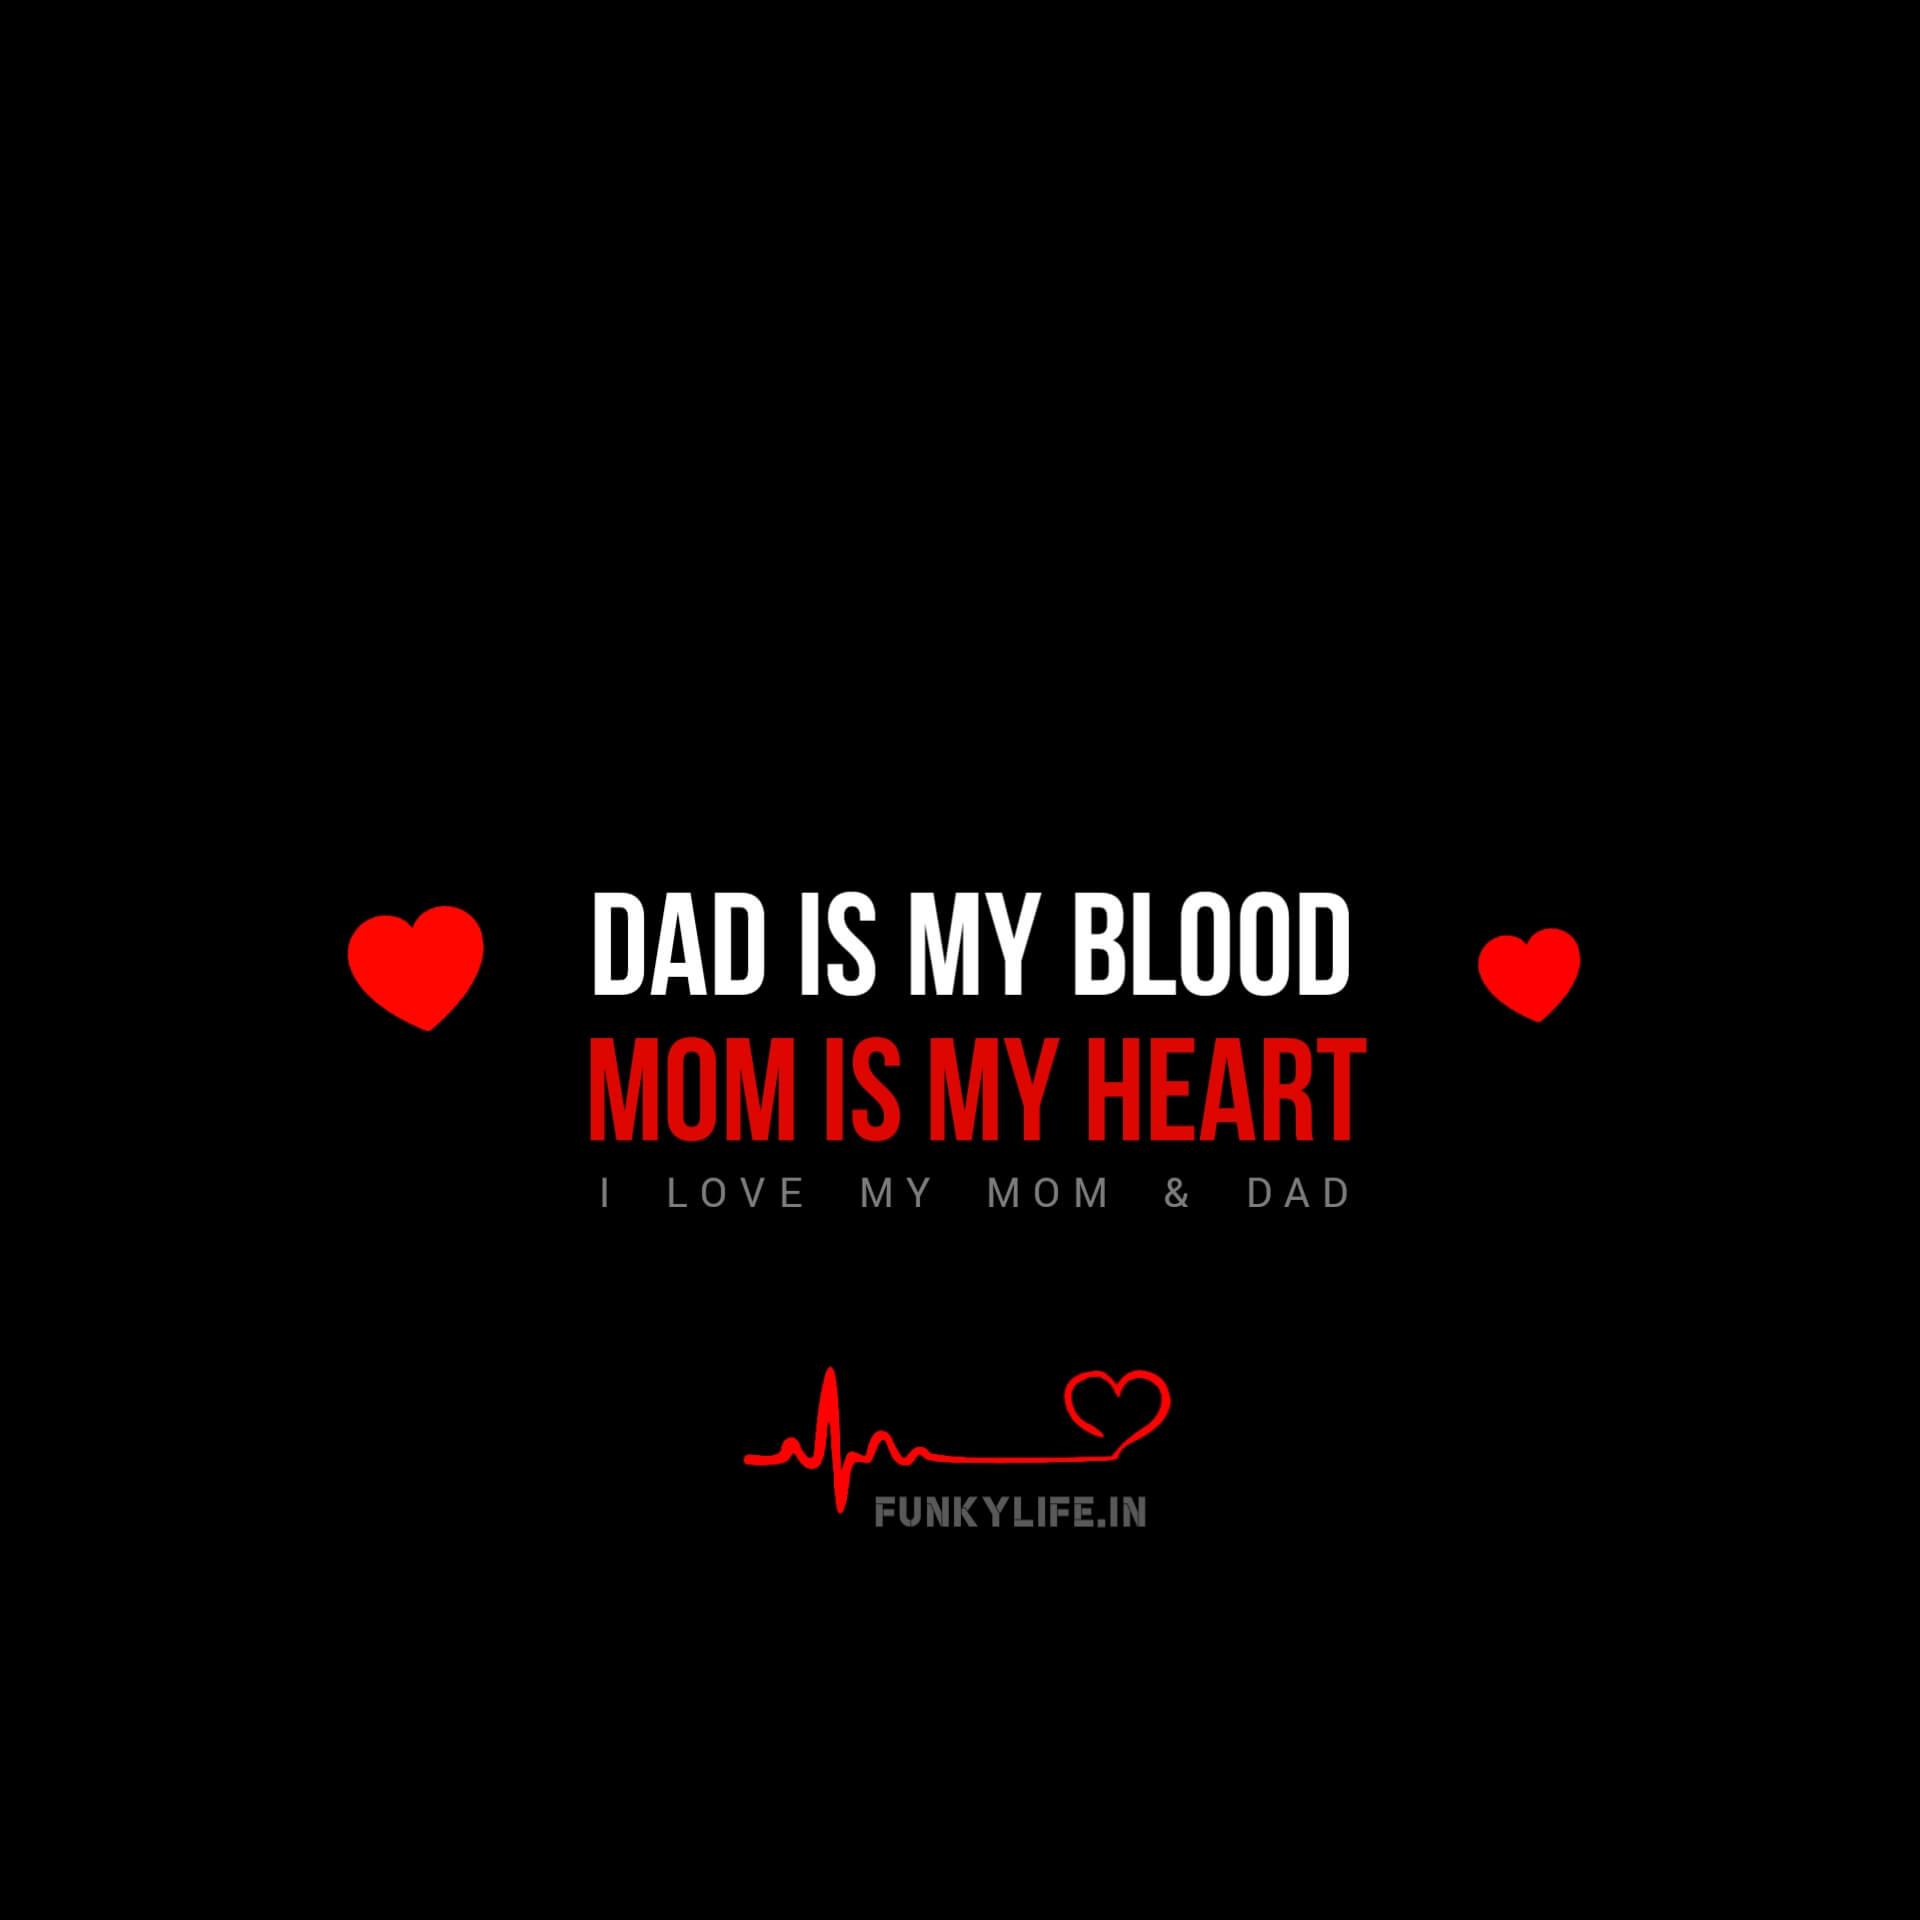 Best Mom And Dad WhatsApp DP